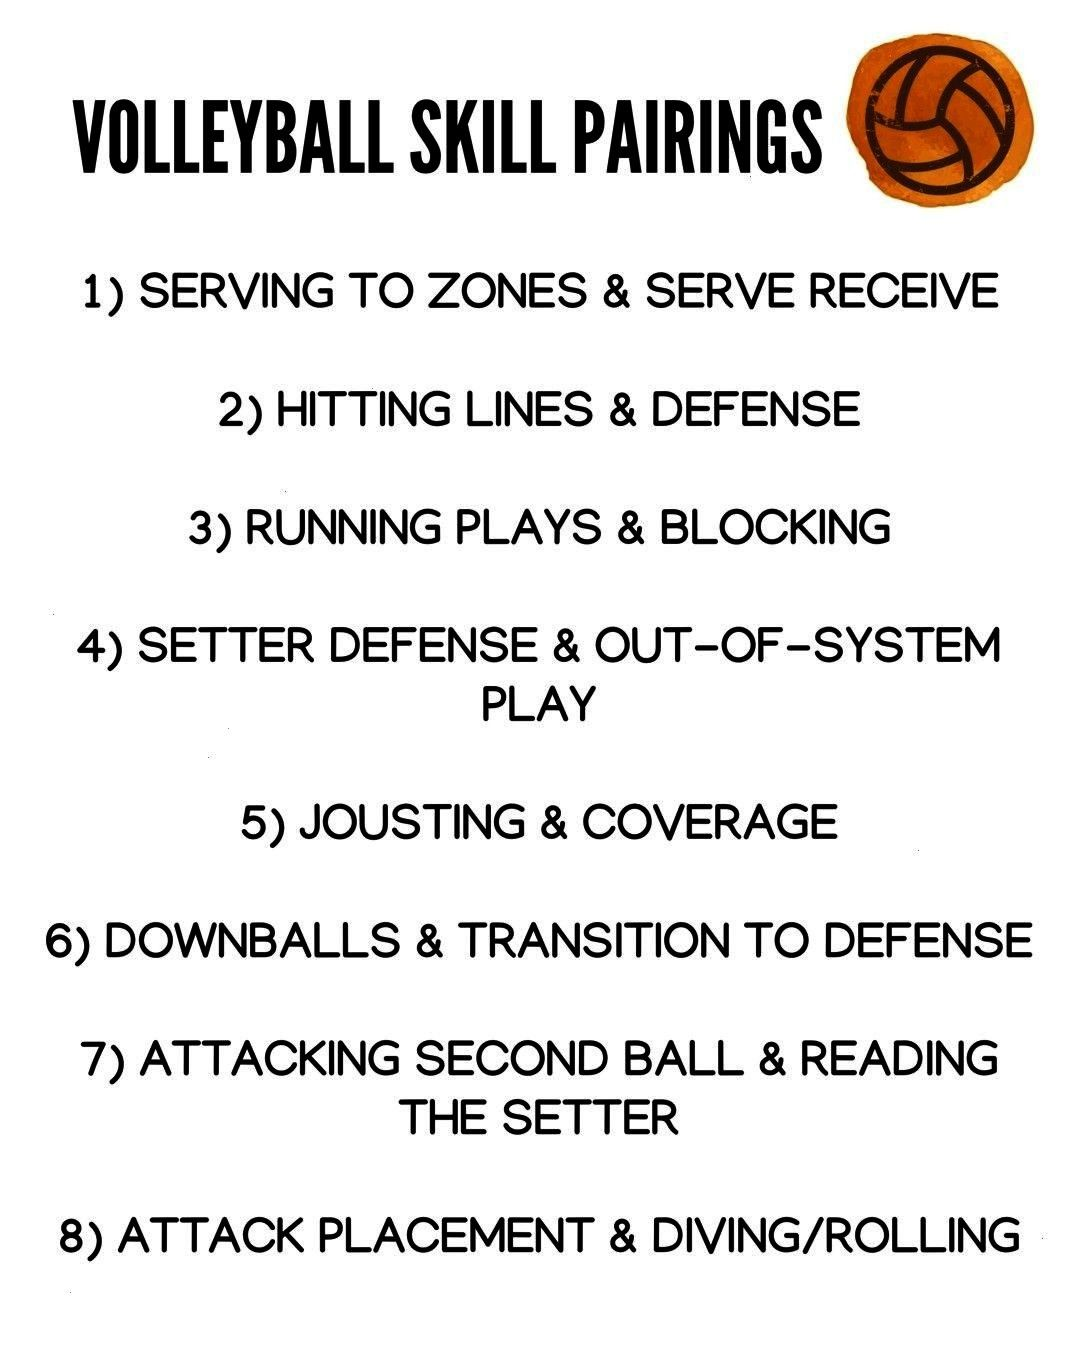 Youtubeserve Volleyball Youtubeand Coaching Pairings Andserve Youtube Receive Andand Drill Serve A In 2020 Volleyball Drills Coaching Volleyball Volleyball